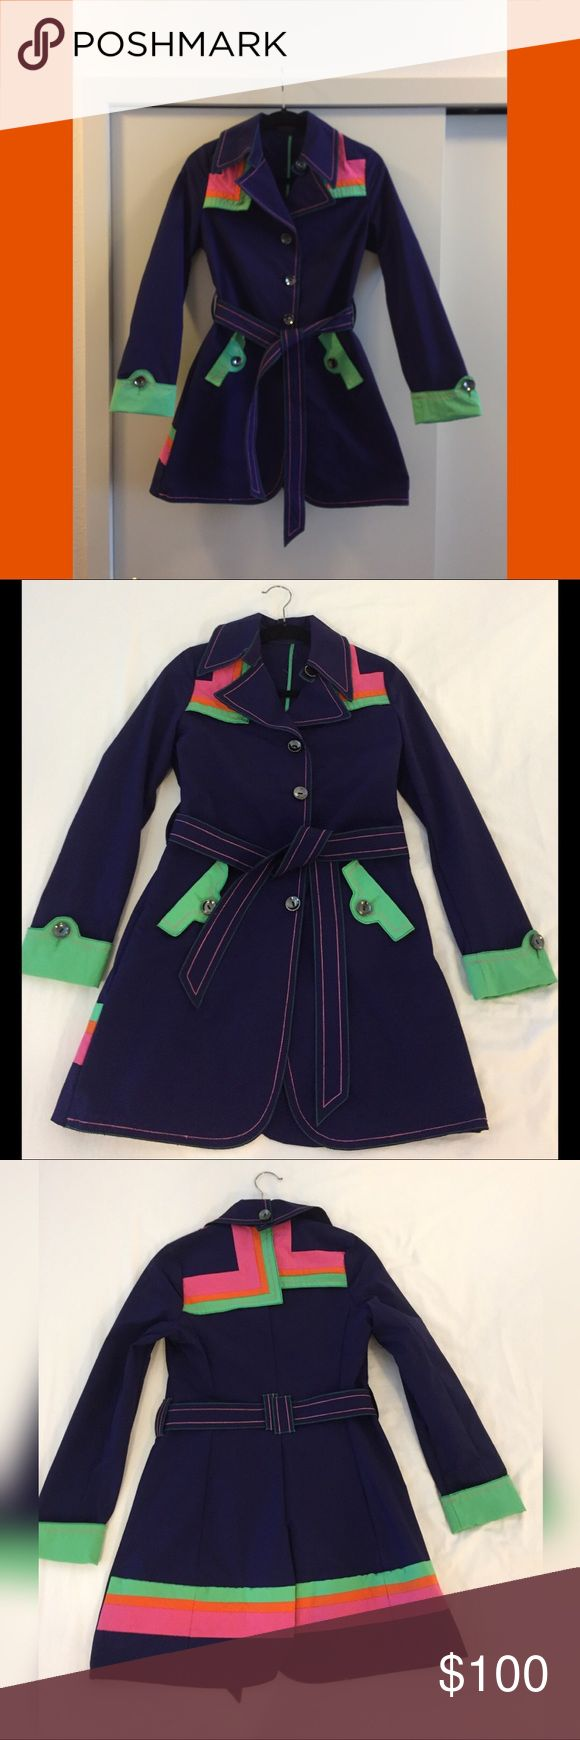 Custo Barcelona Trench Amazing Custo Barcelona trench coat. Purchased at a sample sale. Fits a 2/4. Asymmetric color blocked details. Purple, pink, orange, lime. Shiny silver tone buttons. Cuffs look great folded or down...perfect if you have longer arms. Amazing condition! One of a kind! Custo Barcelona Jackets & Coats Trench Coats